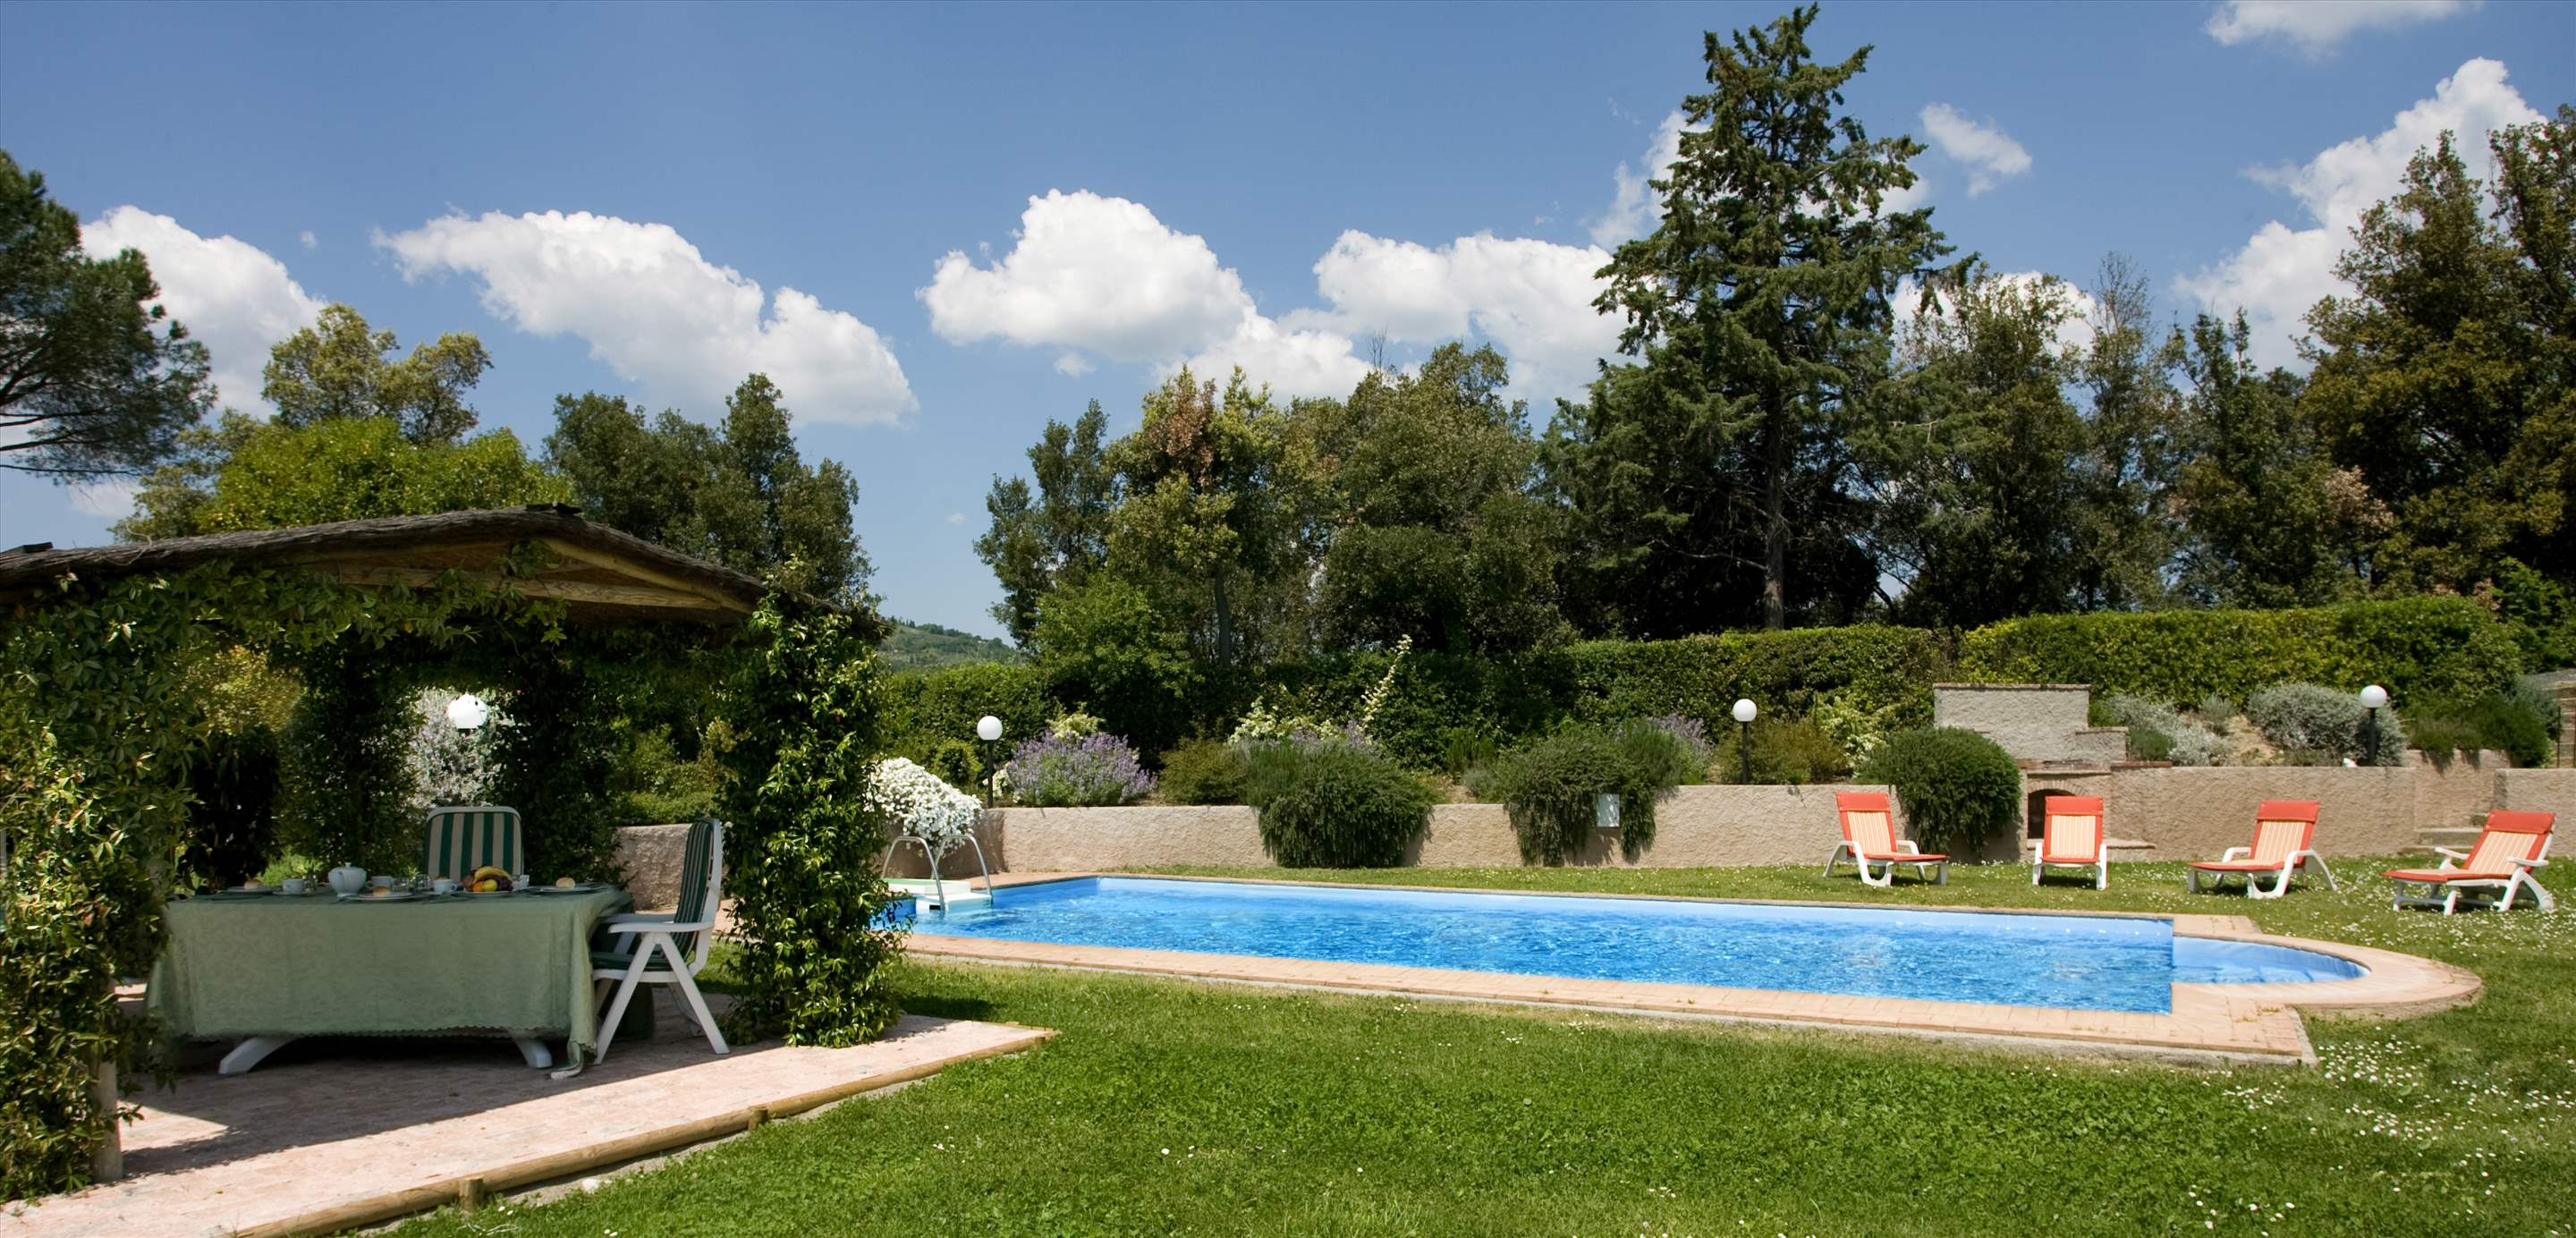 Villa Di Archi & Dependance, 9 bedroom villa in Tuscany Coast, Tuscany Photo #2